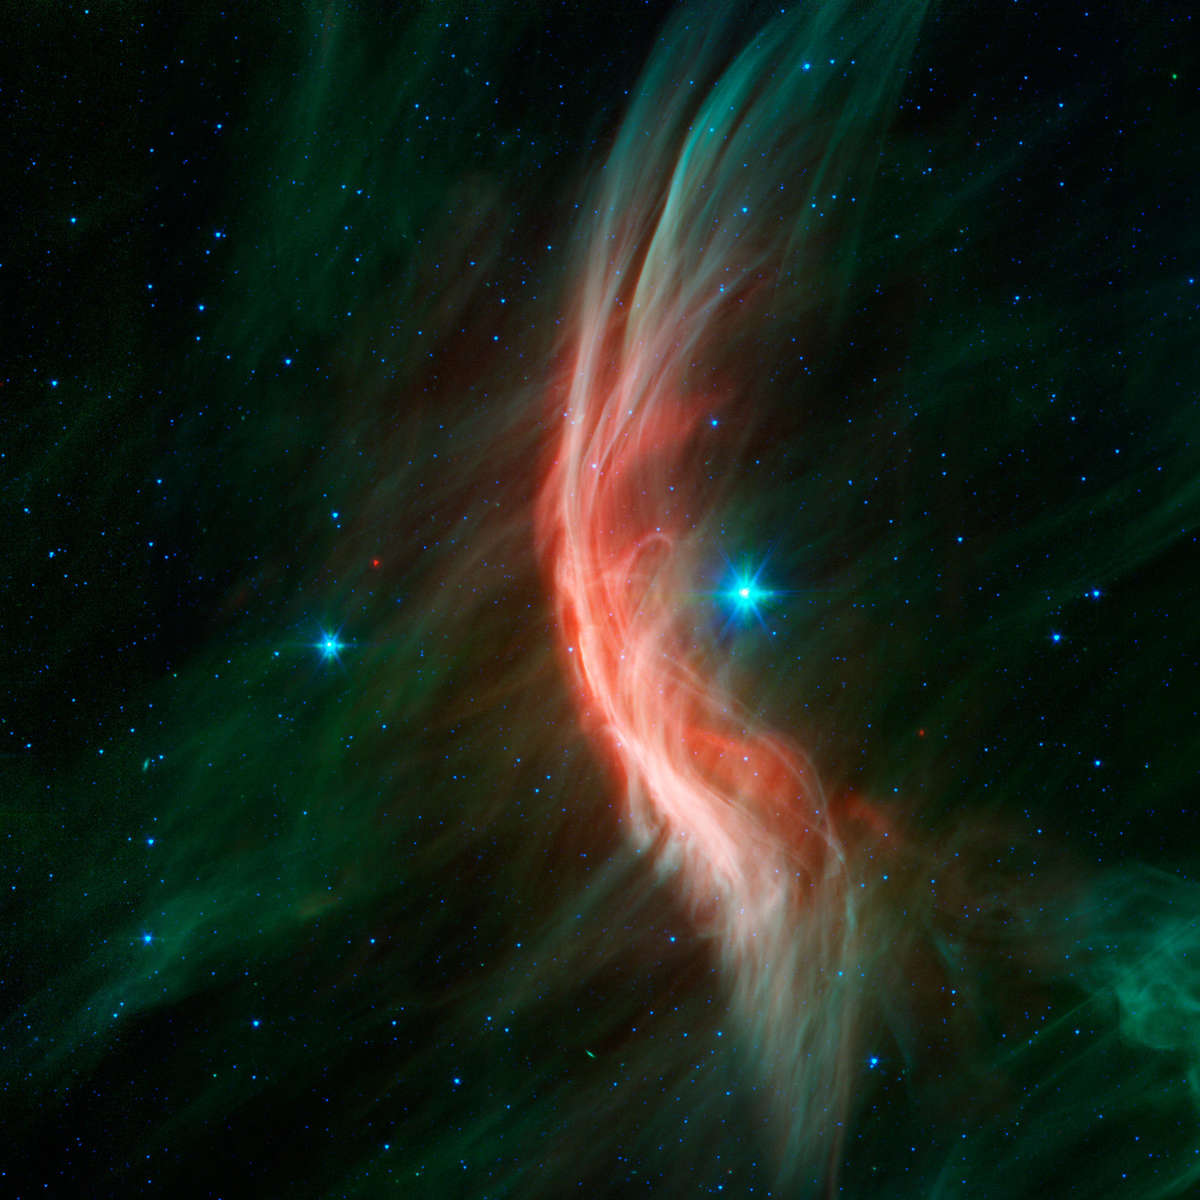 The massive star Zeta Oph making waves. Credit: NASA/JPL-Caltech